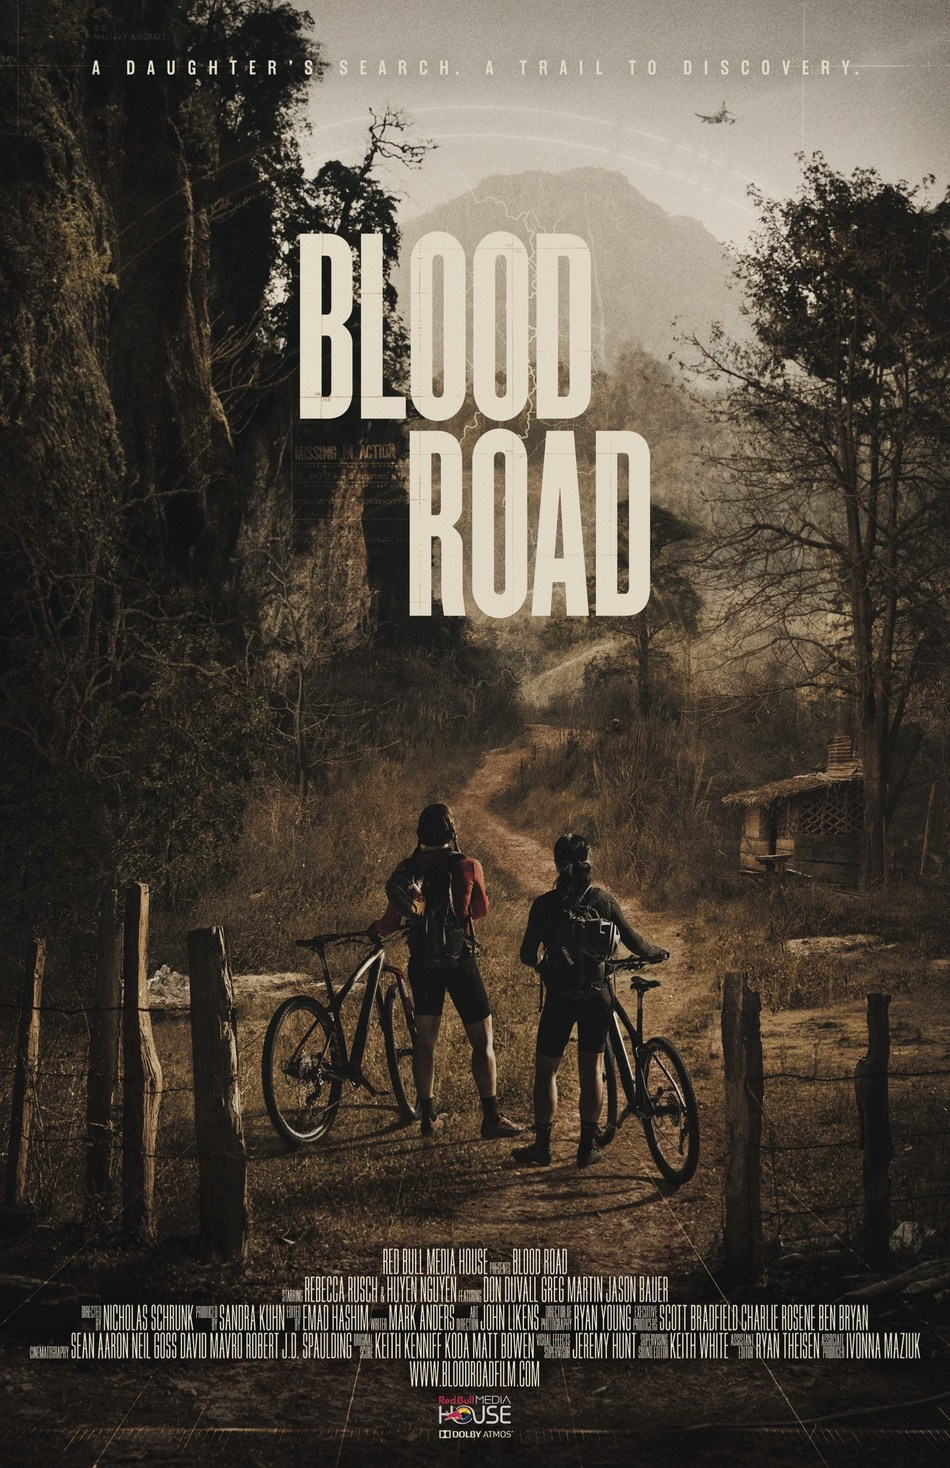 """Award-winning documentary """"Blood Road"""" from Red Bull Media House comes out worldwide today. The film captures endurance athlete Rebecca Rusch's 1,200 mile journey on the Ho Chi Minh Trail in search of the place where her father's plane crashed during the Vietnam War. Learn more at bloodroadfilm.com."""